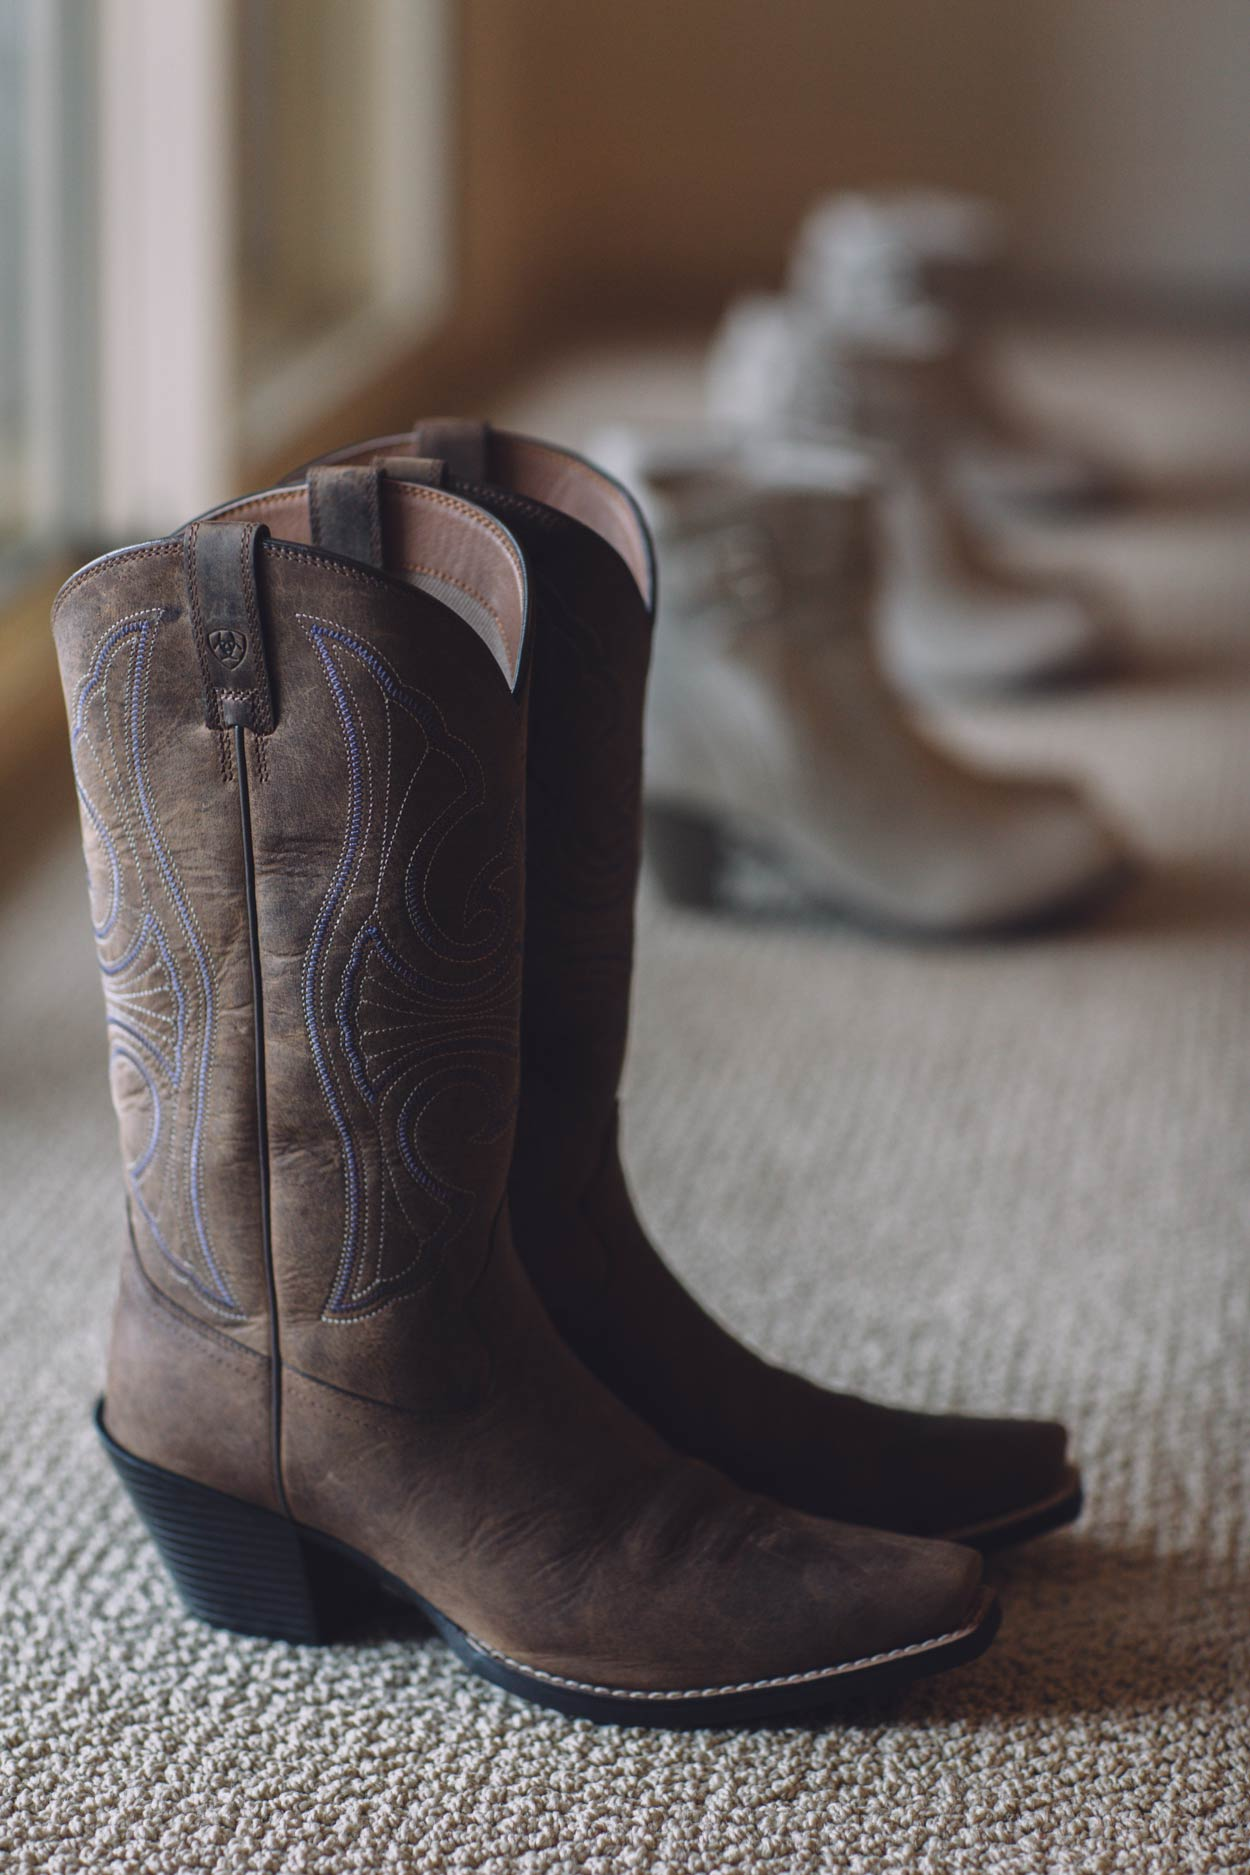 Chic Country Pre Destination Pre Wedding Boots, Montvile - Brisbane, Queensland, Australian Elopement